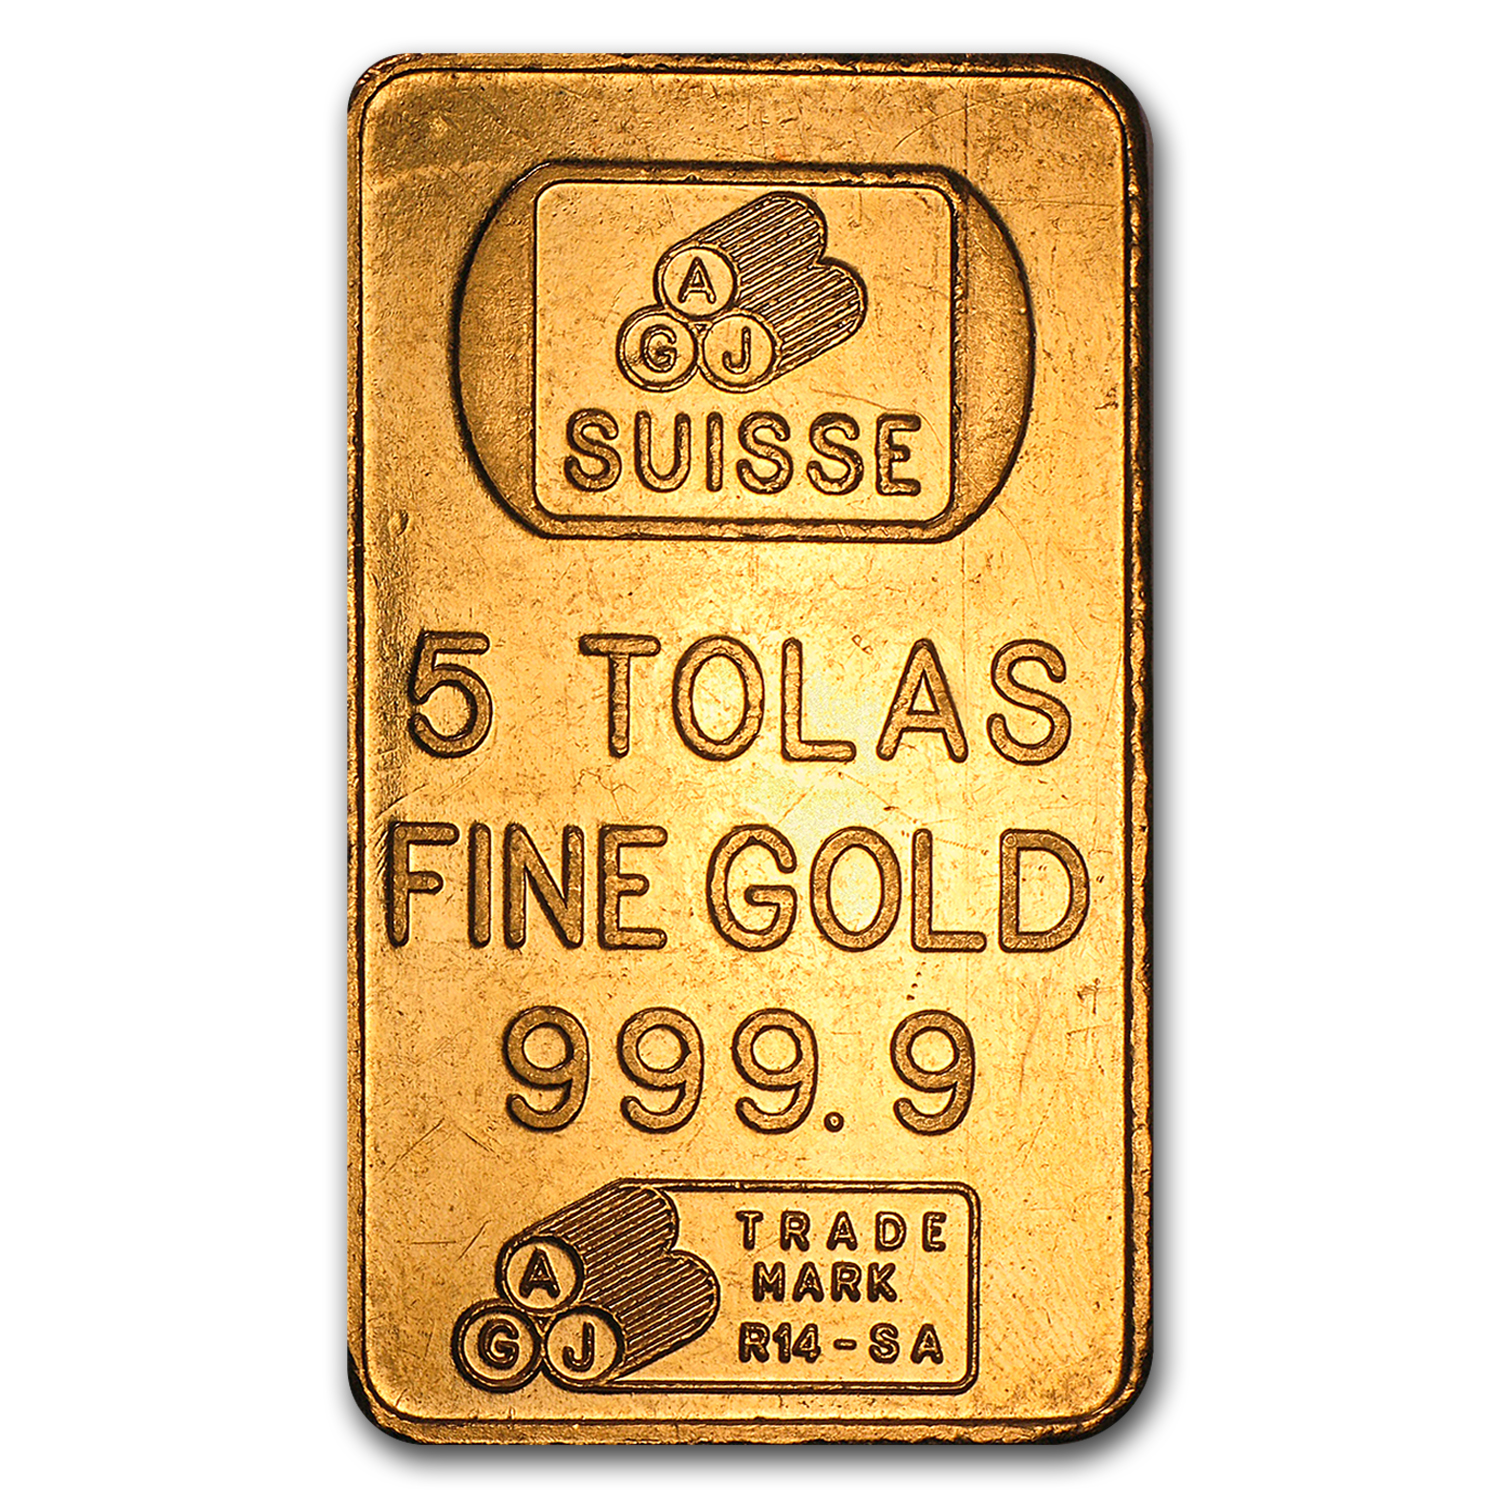 1.875 oz 5 Tolas Gold Bar (Secondary Market) .999+ Fine